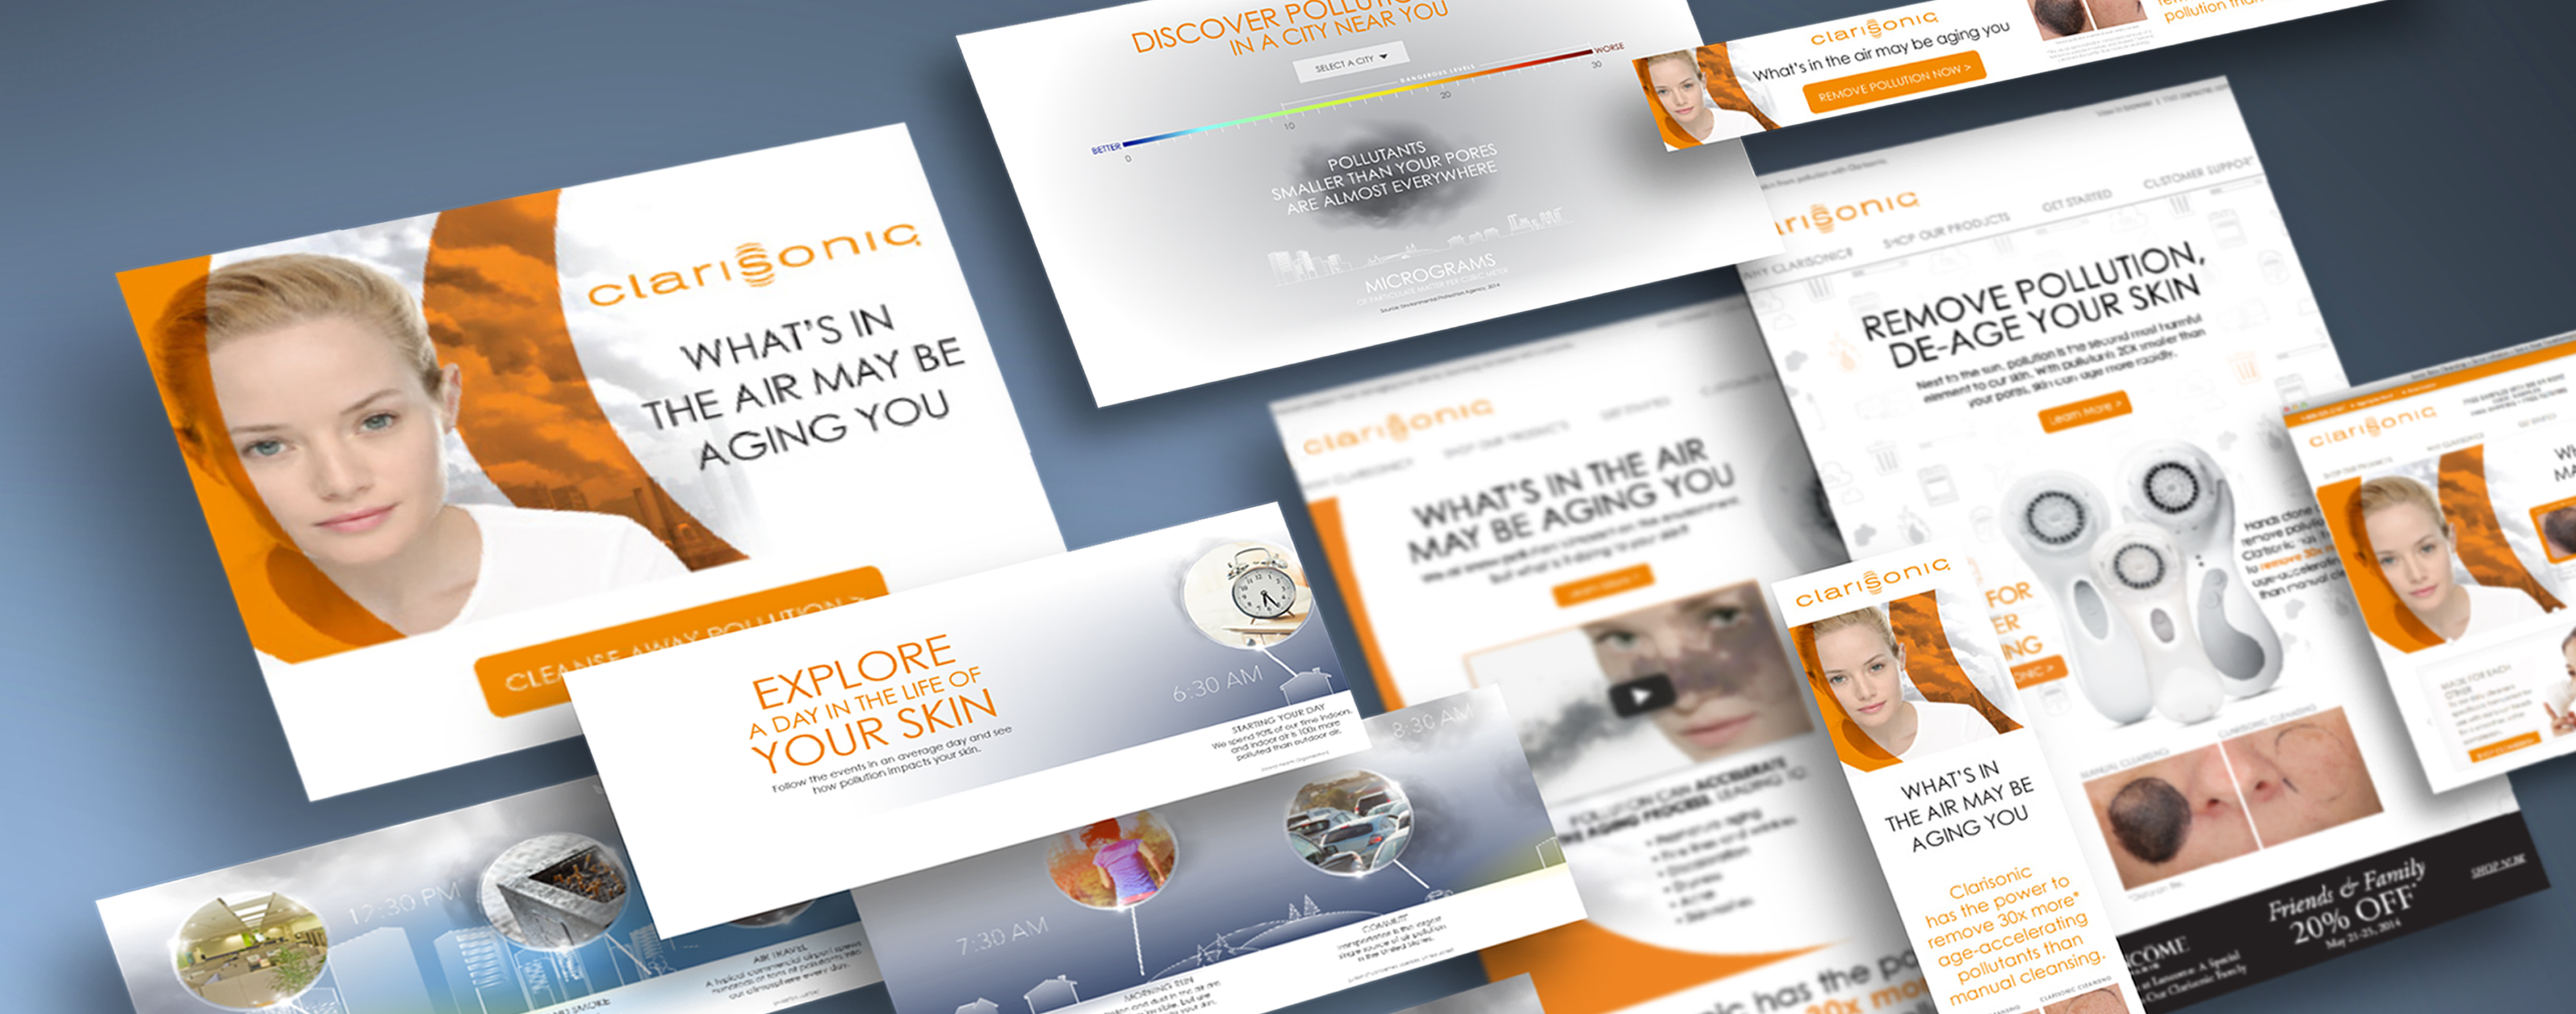 O'Berry Collaborative created an integrated marketing campaign for Clarisonic, including a digital marketing launch featuring an interactive website landing page.